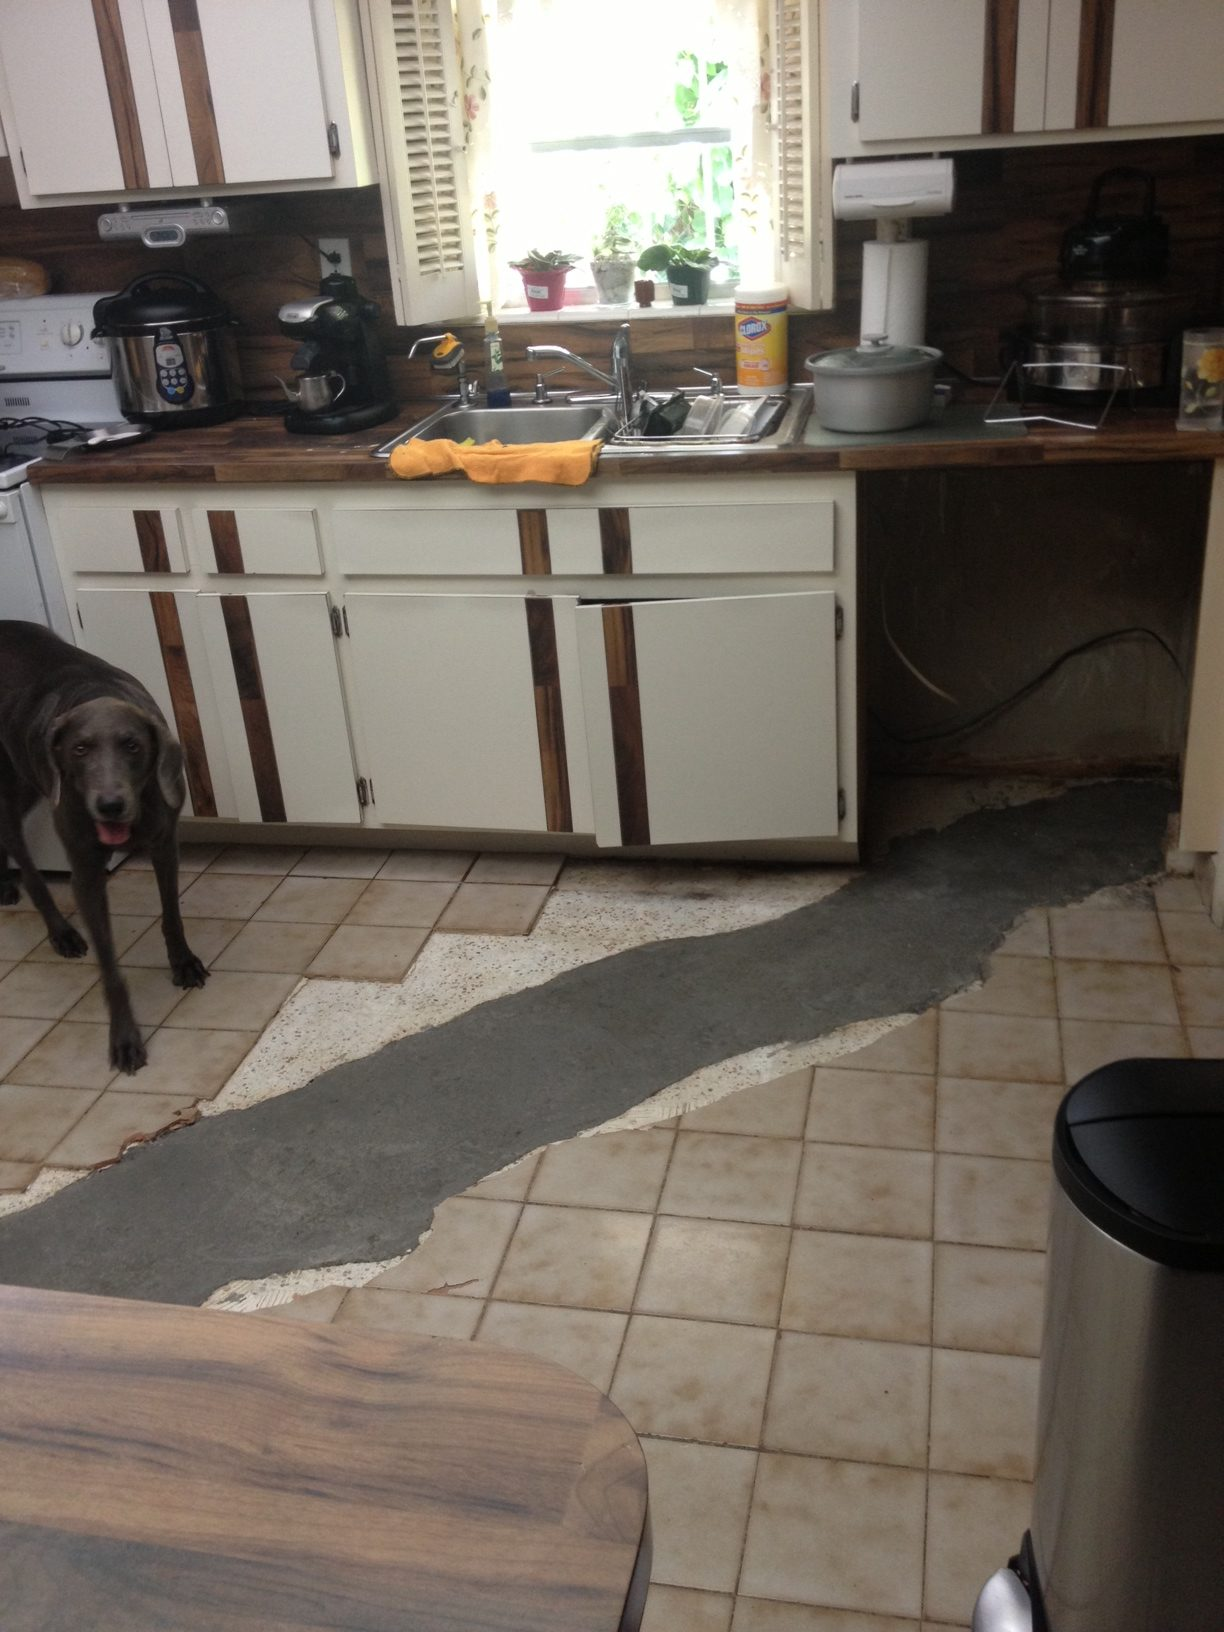 drain line damage grove claim adjusters